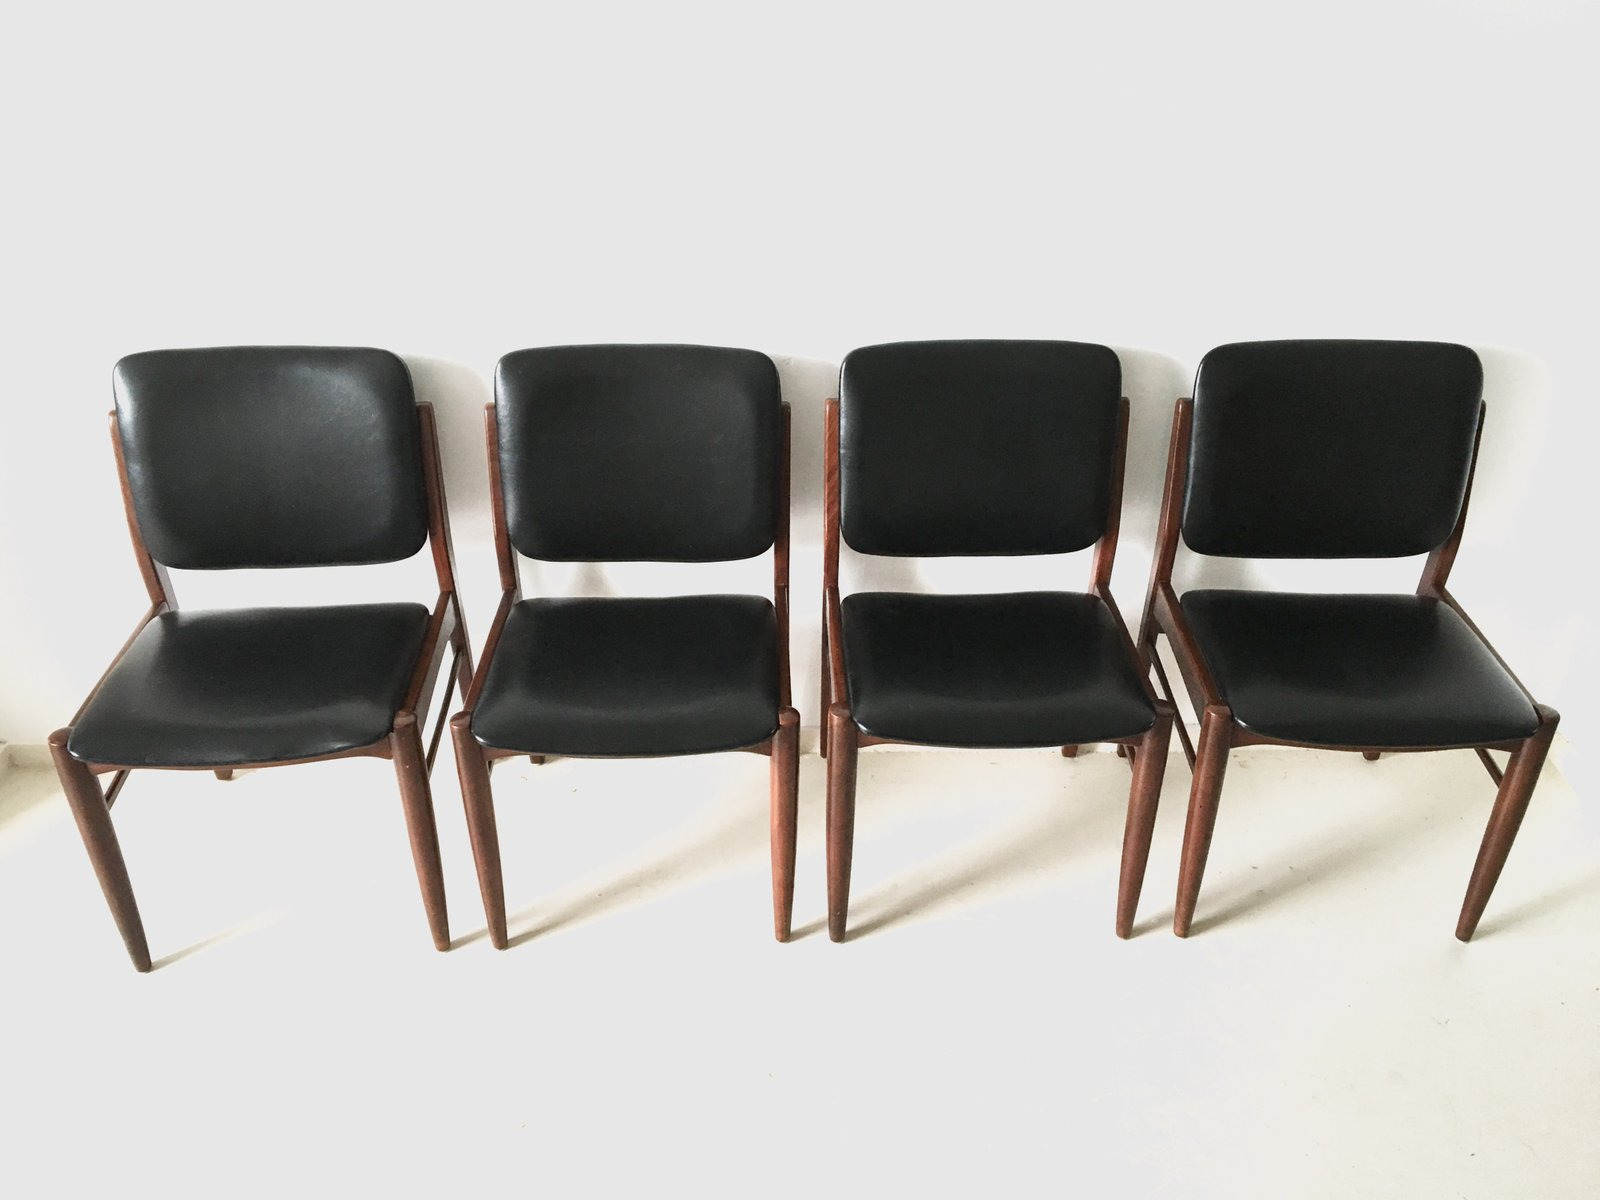 Vintage Danish Dining Chairs 1960s Set Of 4 For Sale At Pamono